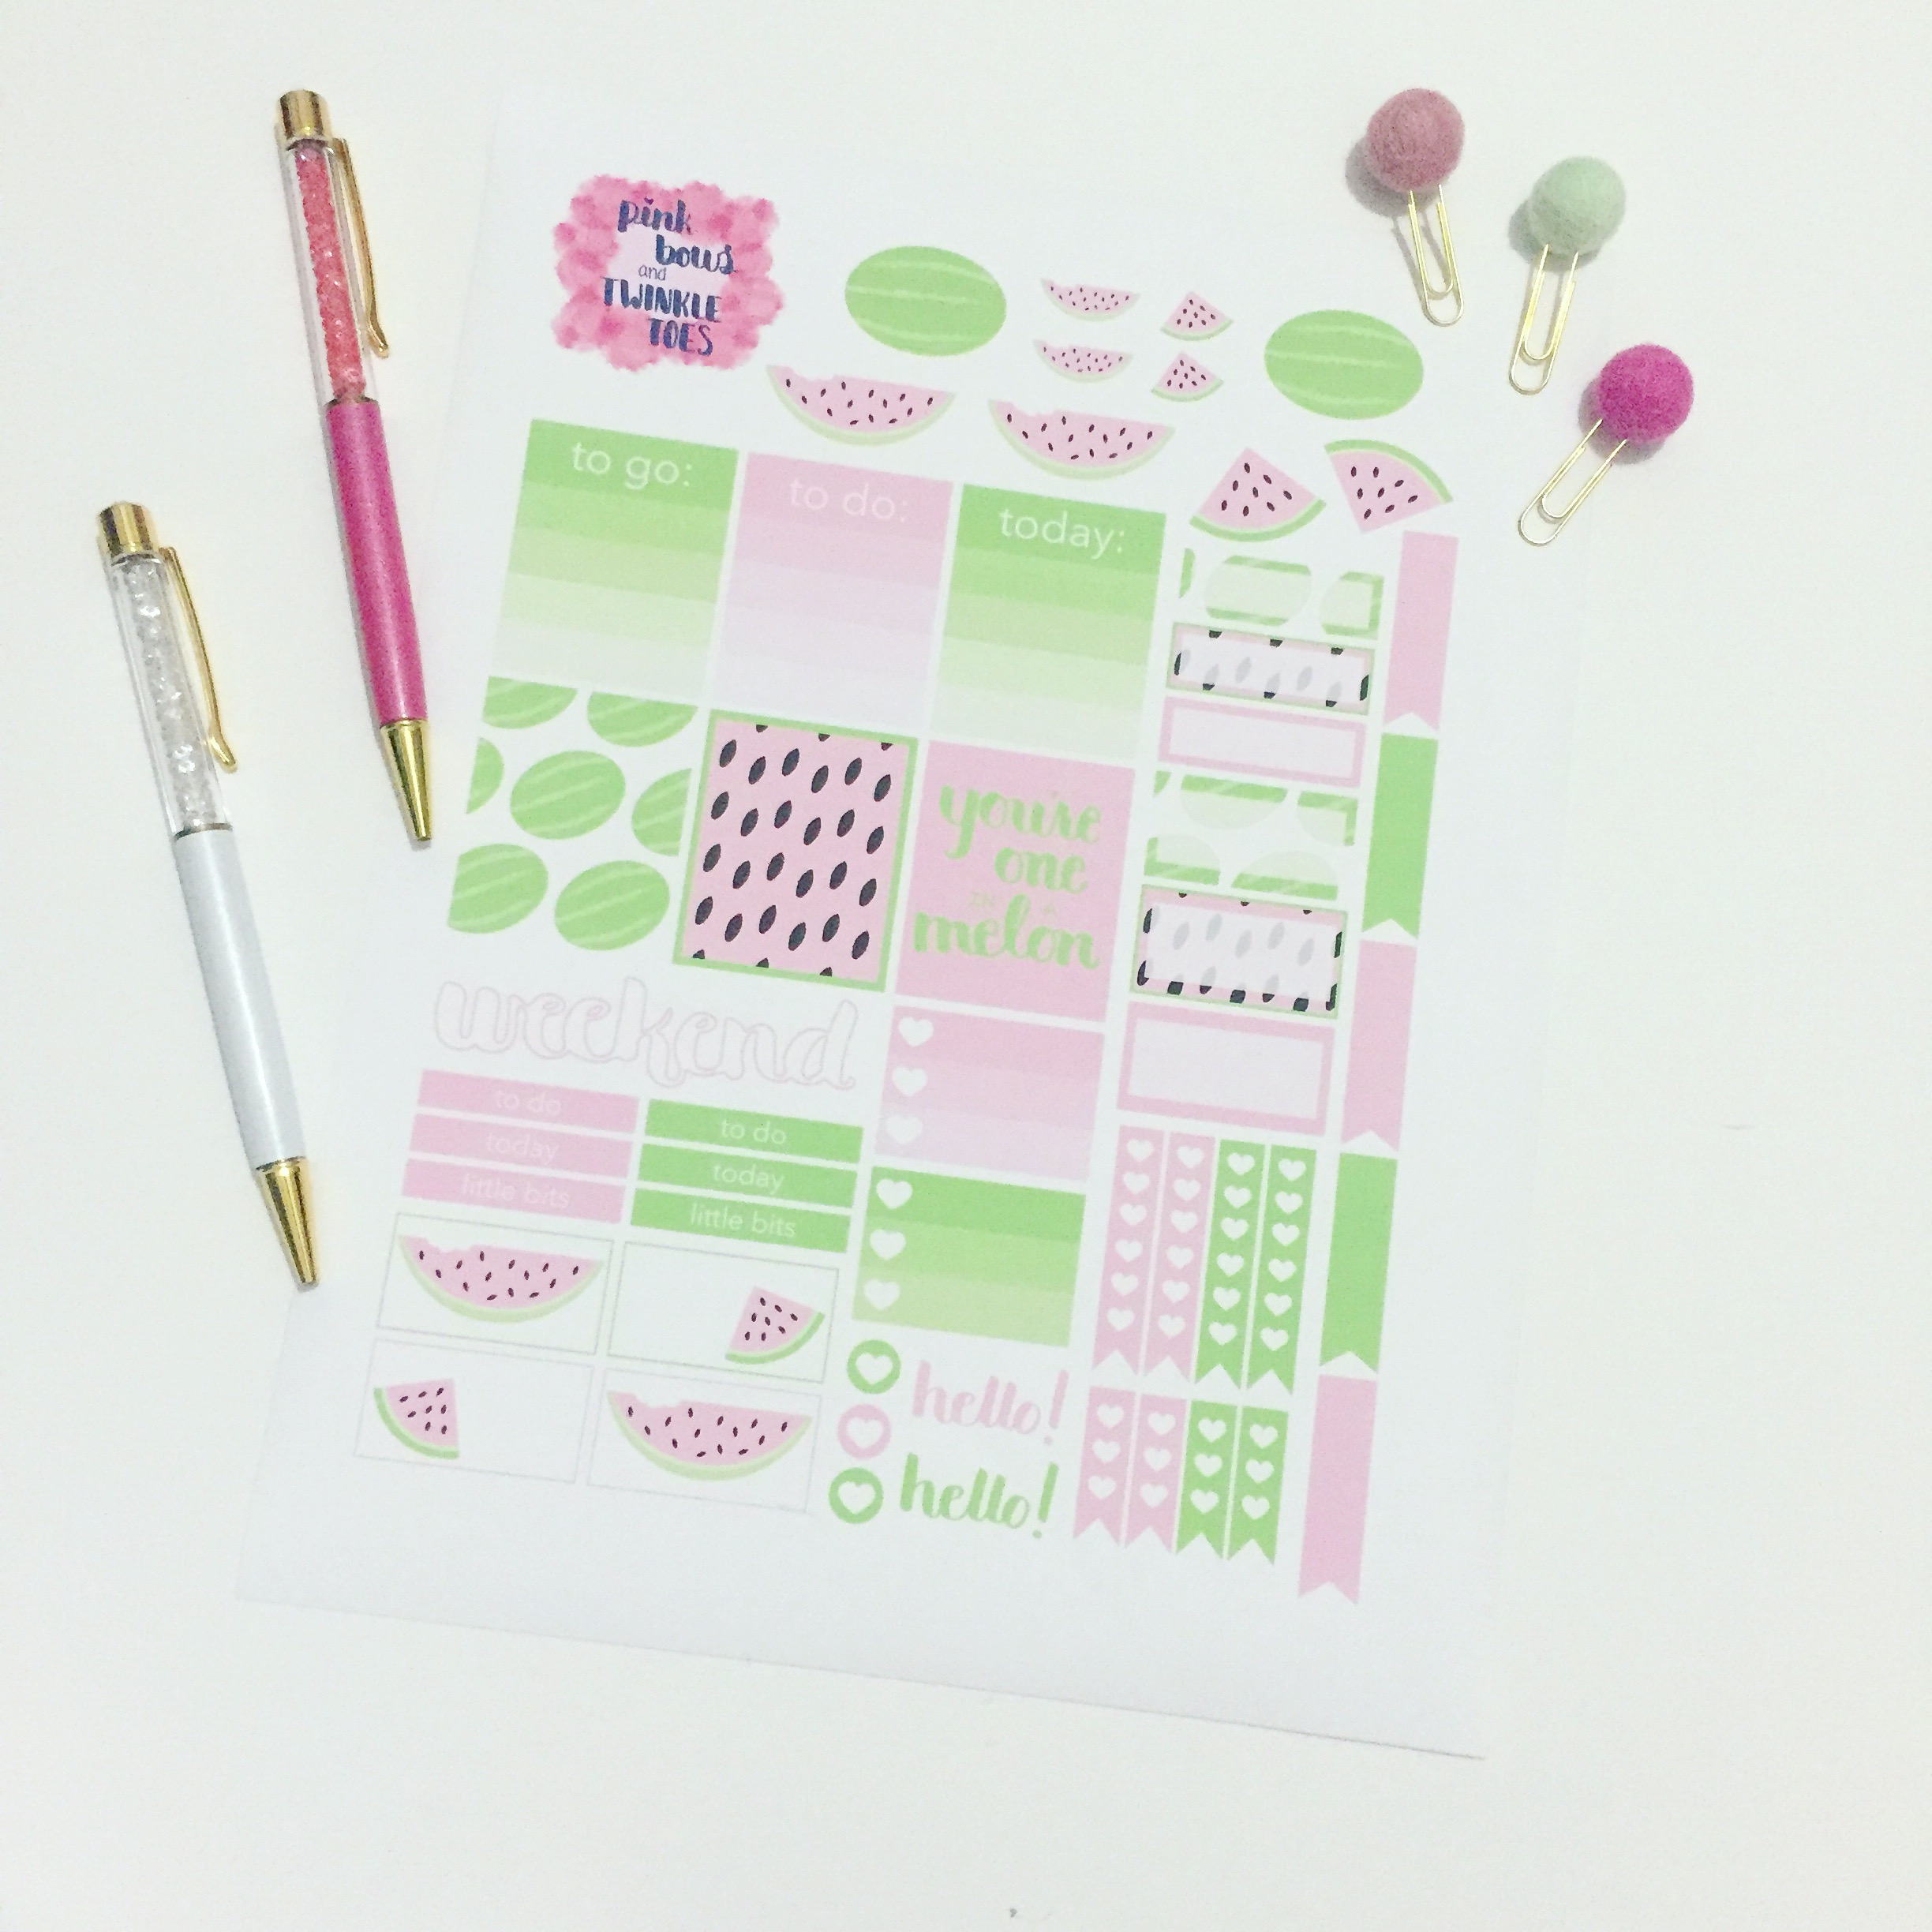 photograph about Have a Ball This Summer Free Printable named Summer season Melons Planner Stickers: Cost-free Printable - Crimson Bows